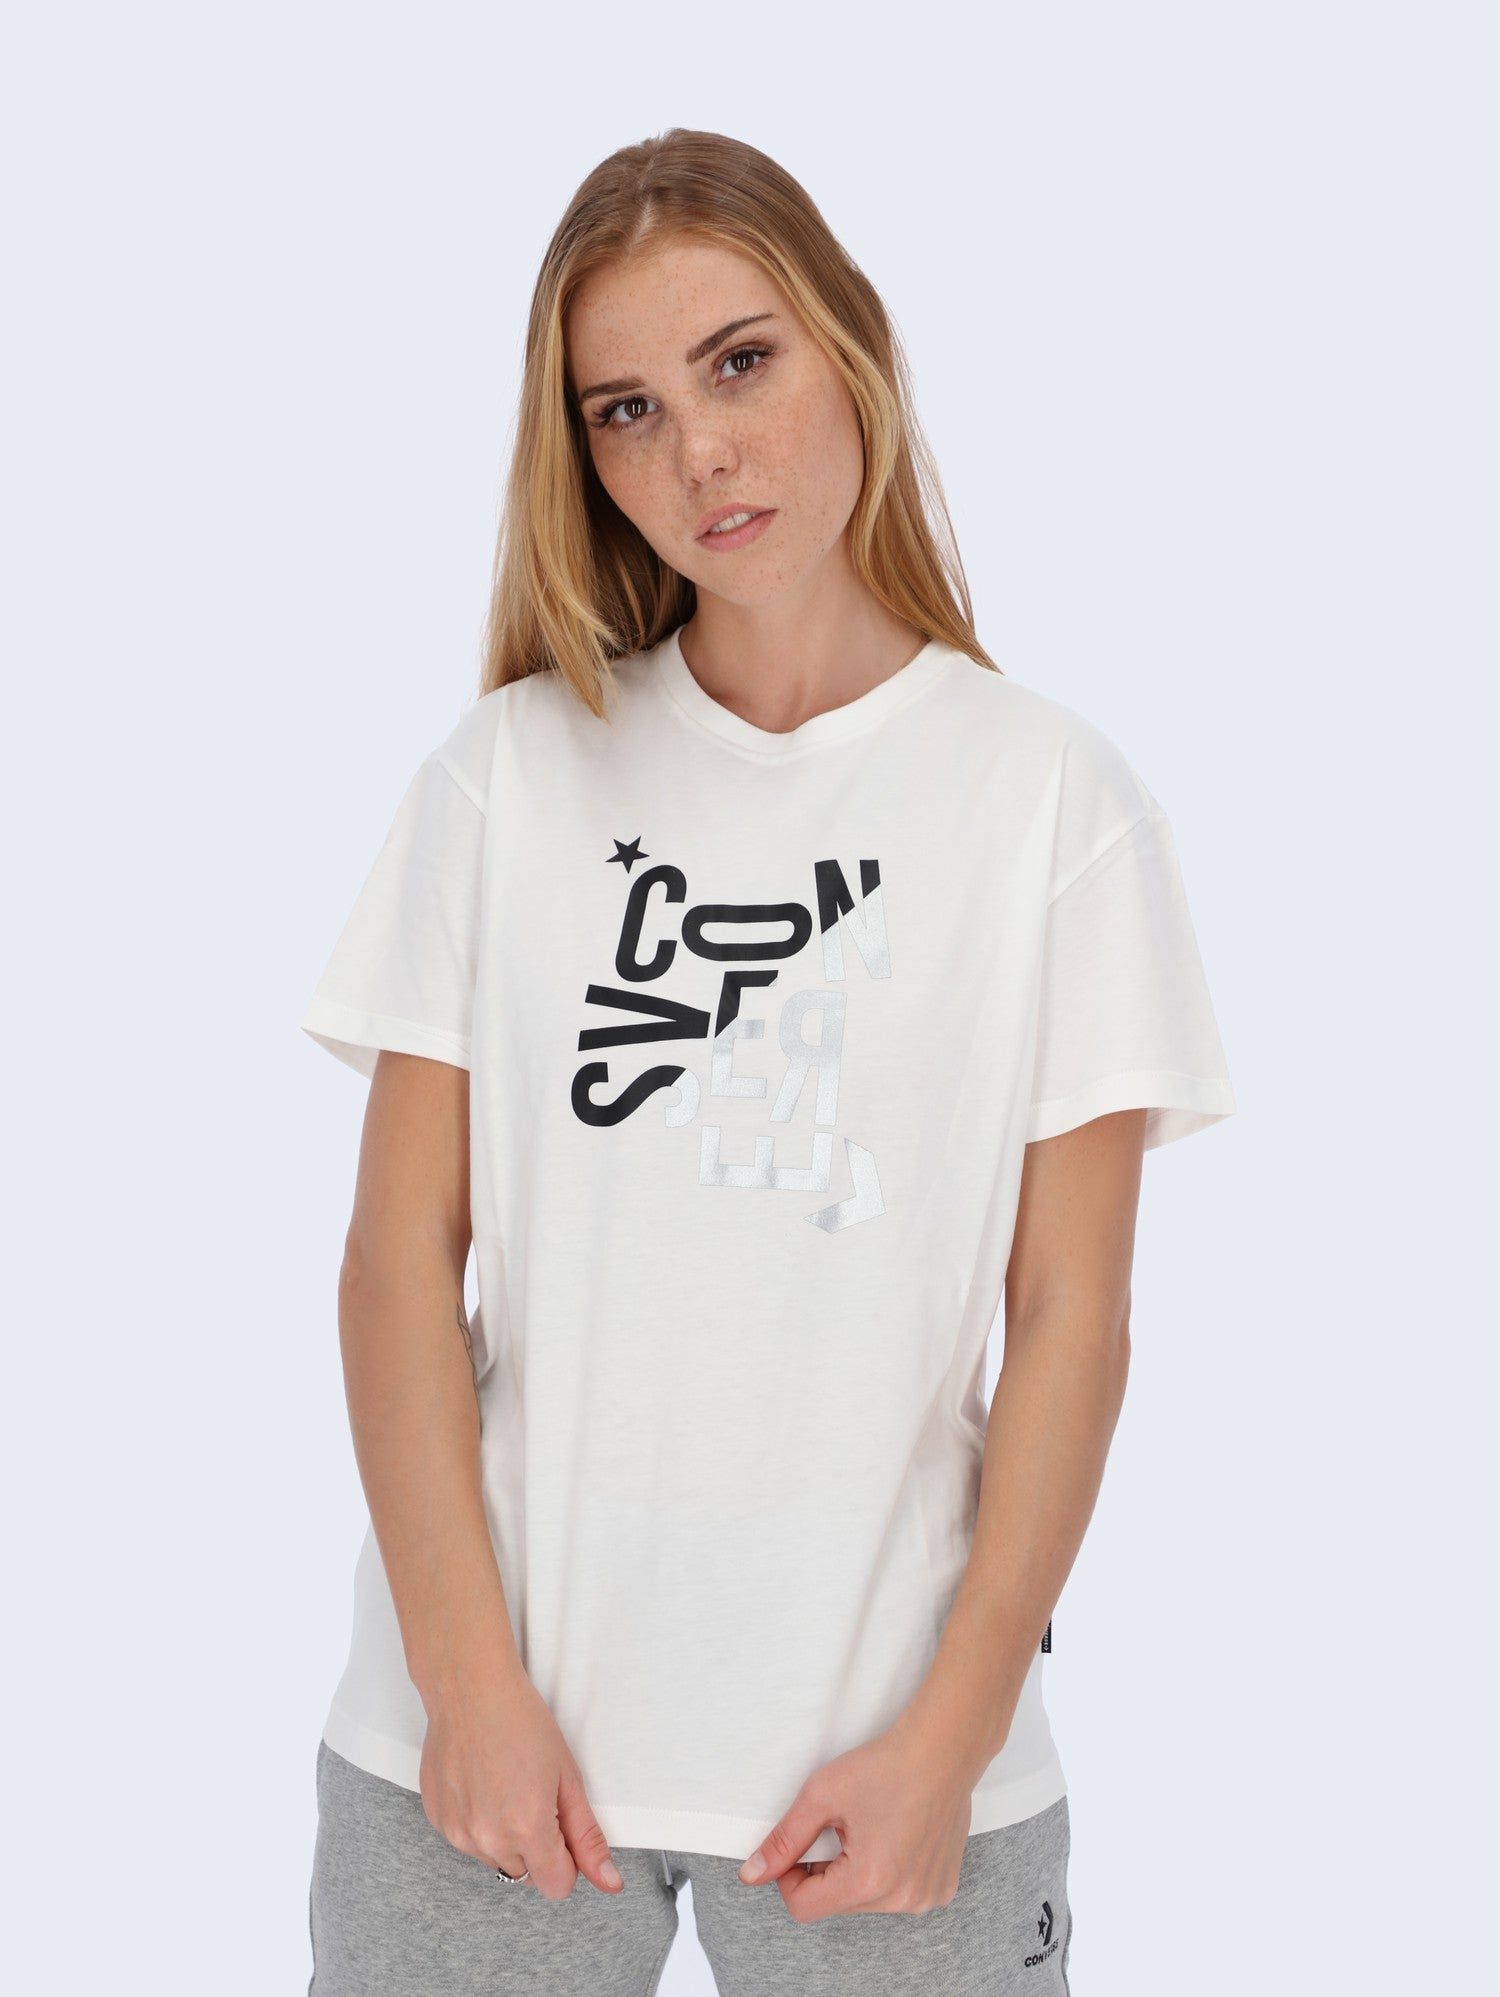 Converse Women's Hacked Logo Graphic T-Shirt - 10020551-a02